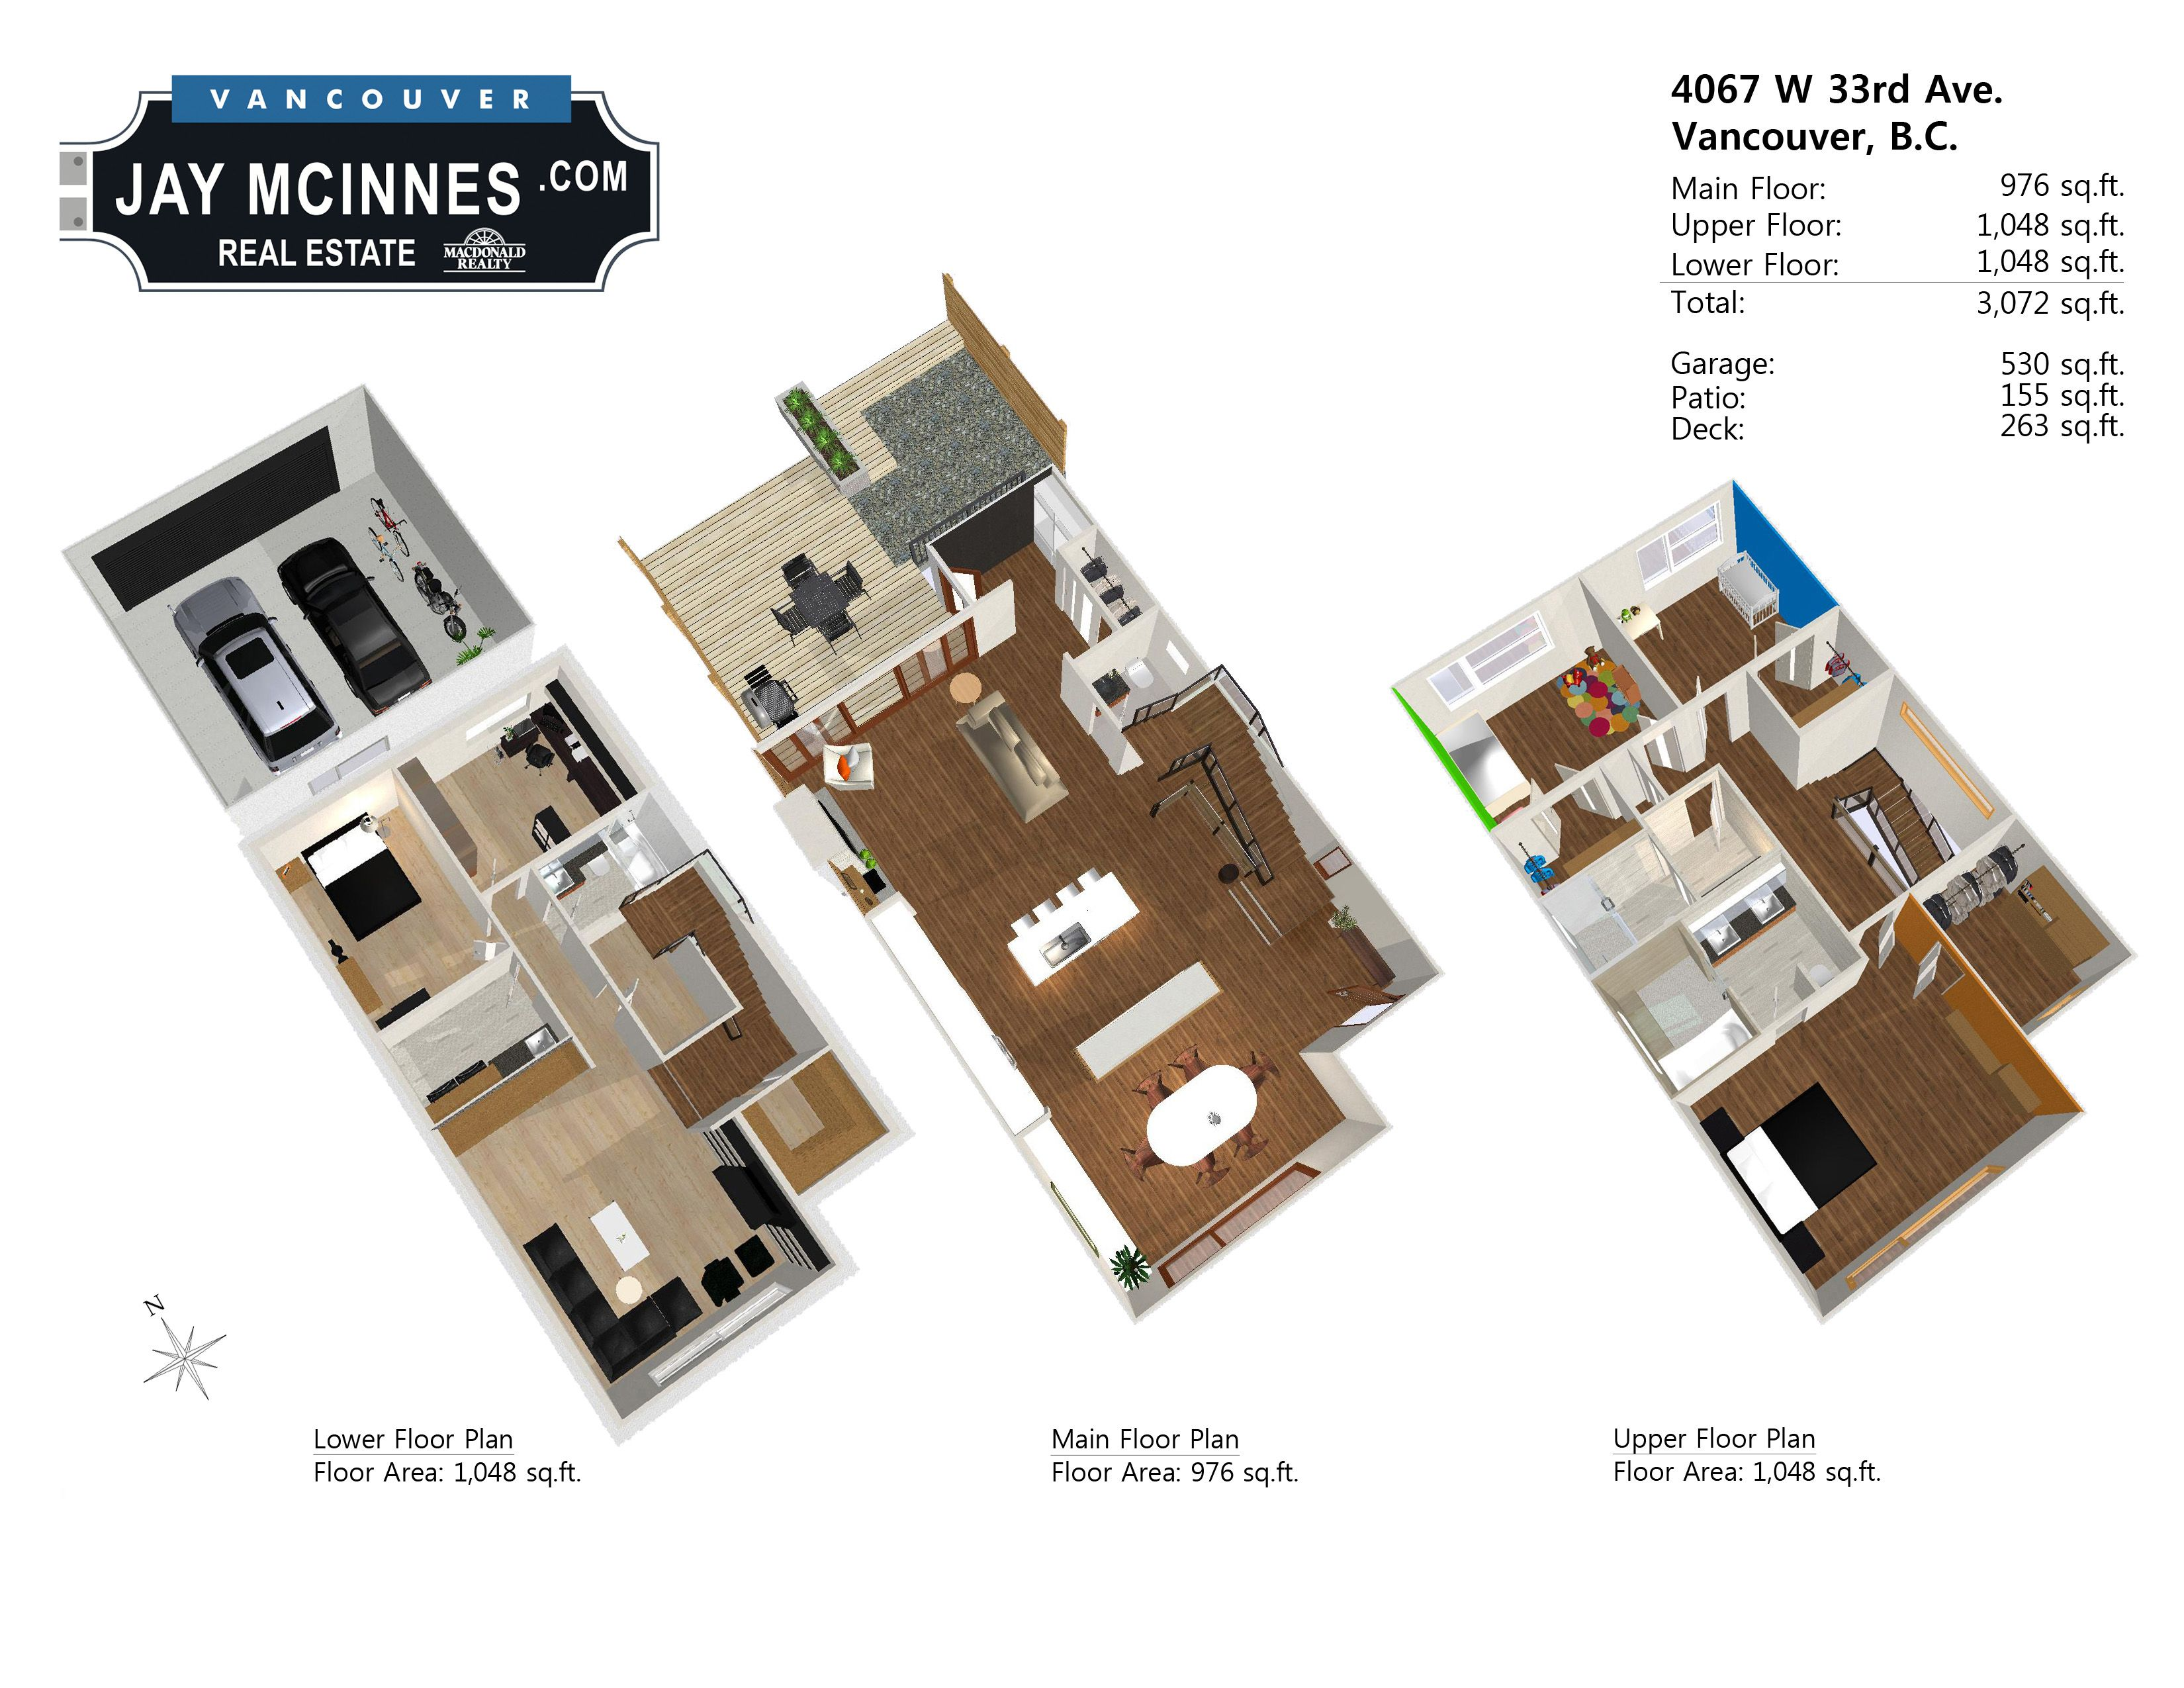 3d floor plan of 4067 w 33rd ave vancouver west side modern